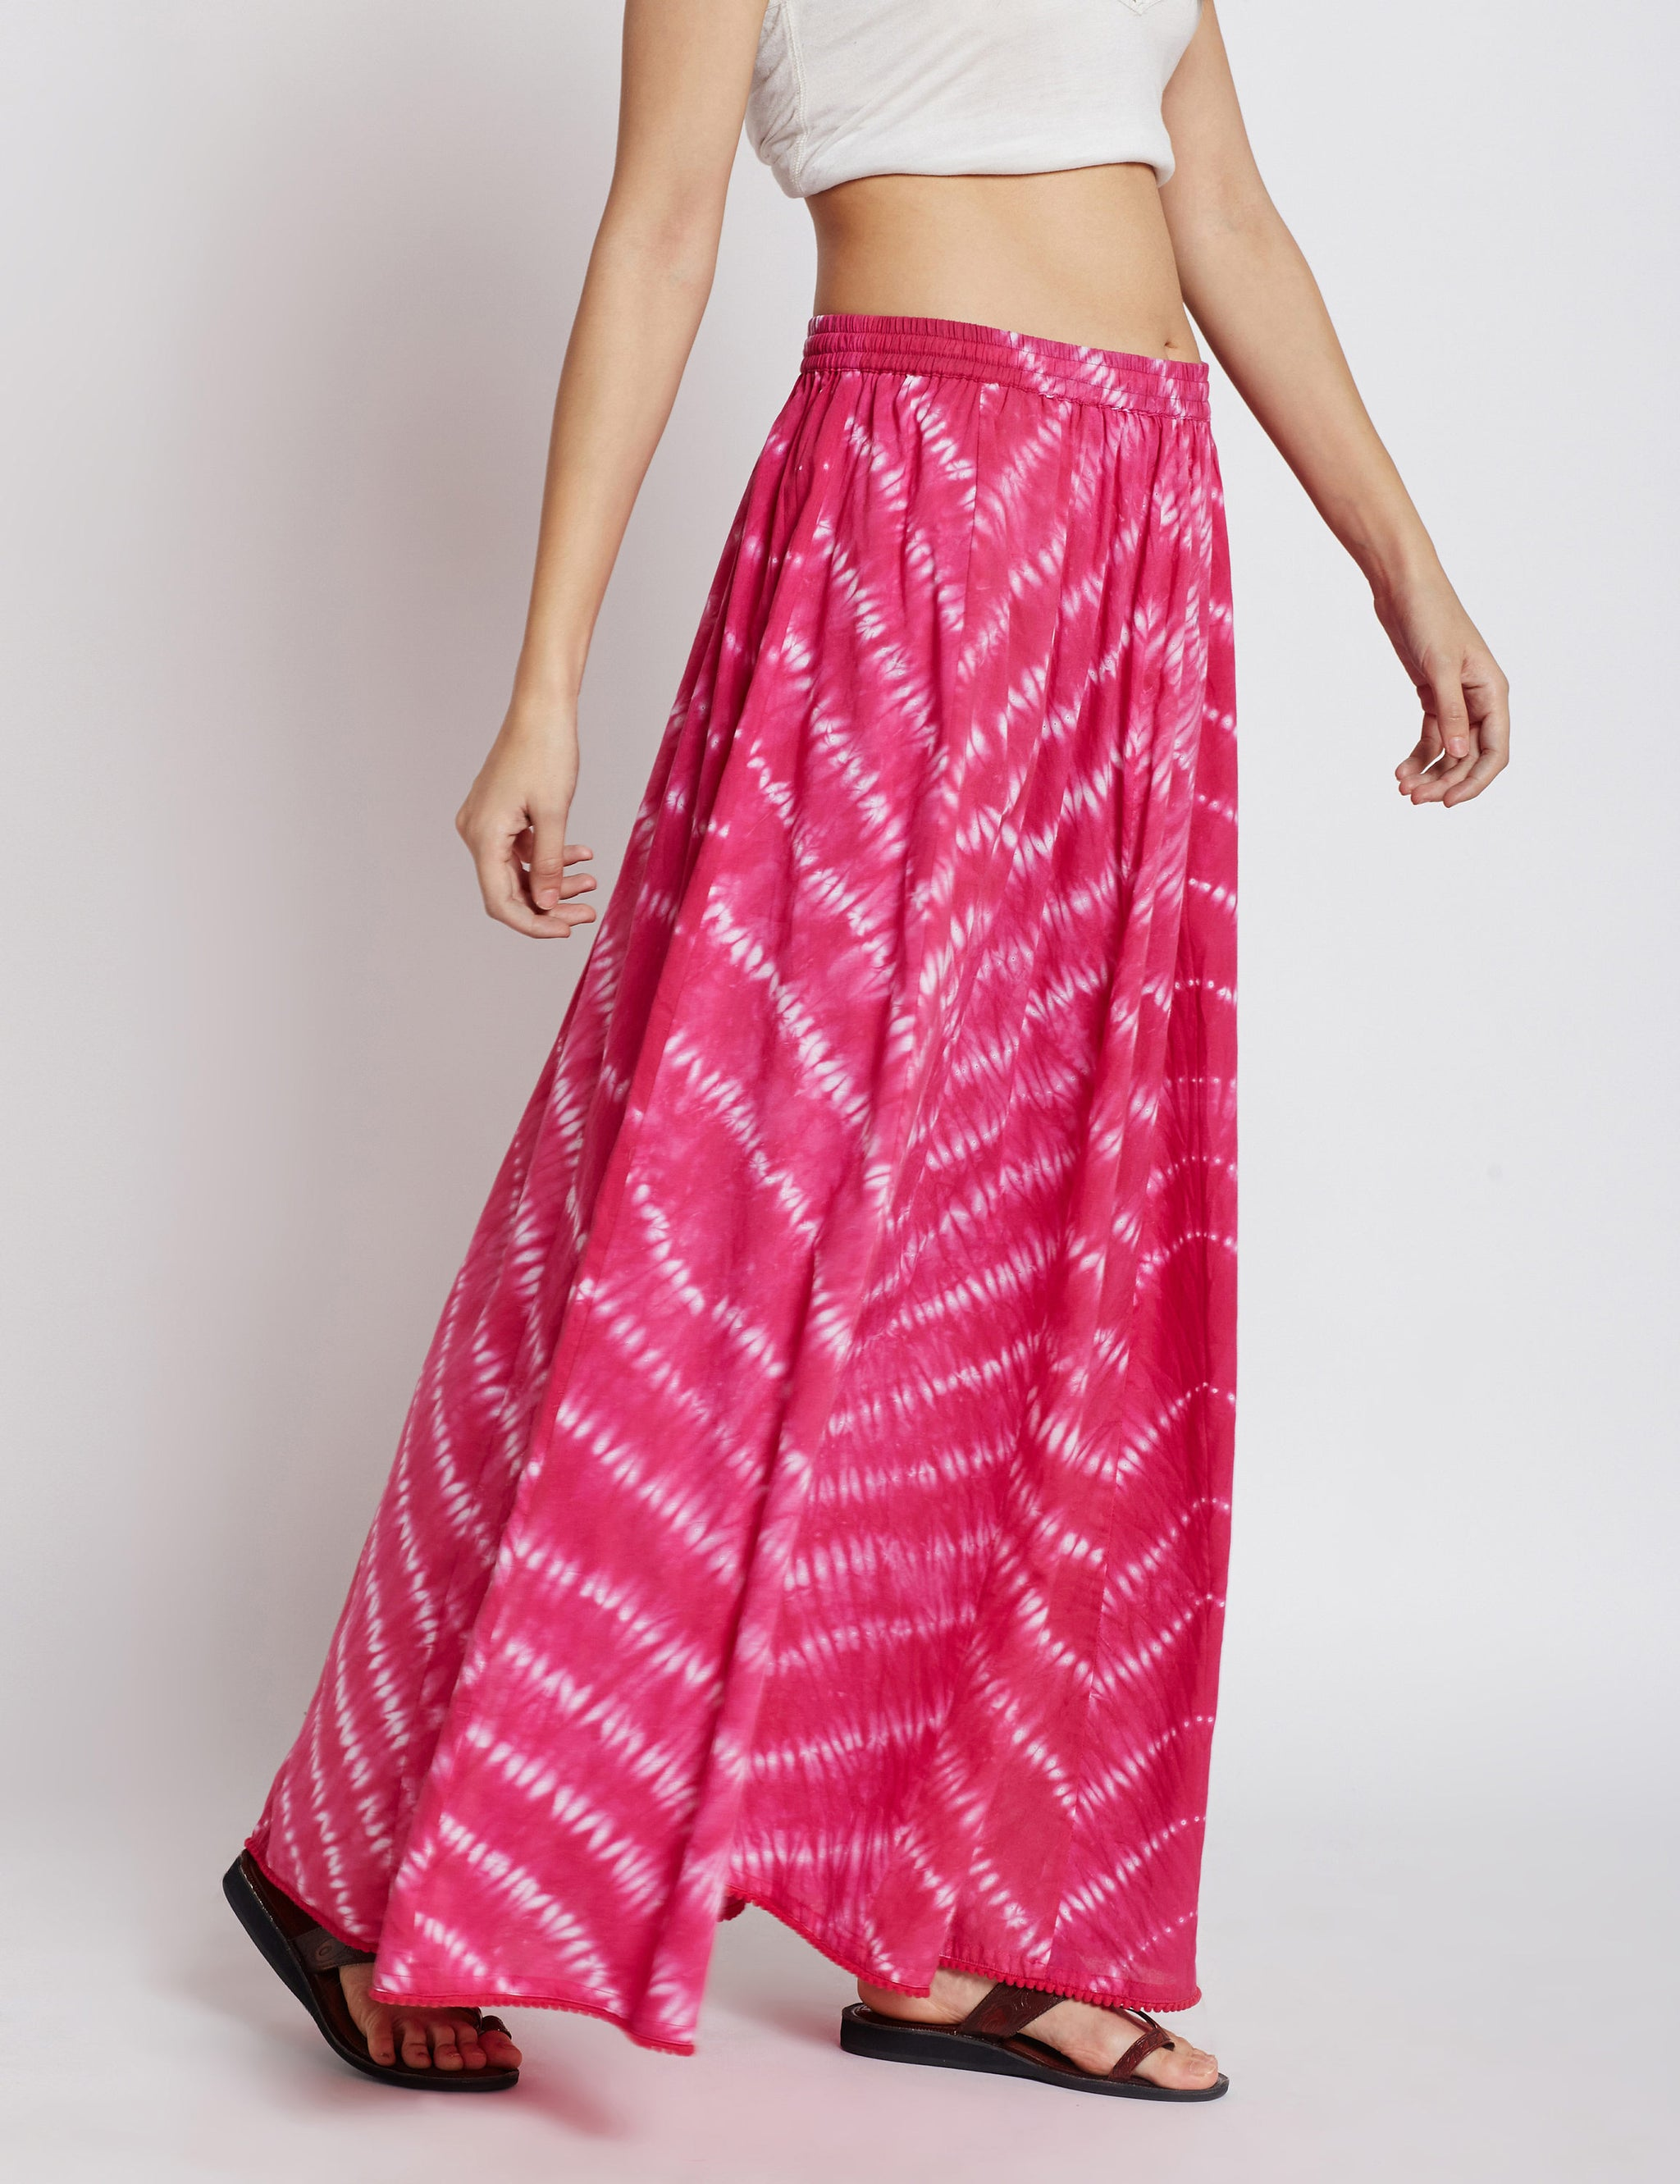 Shibori panelled long skirt in hotpink colour